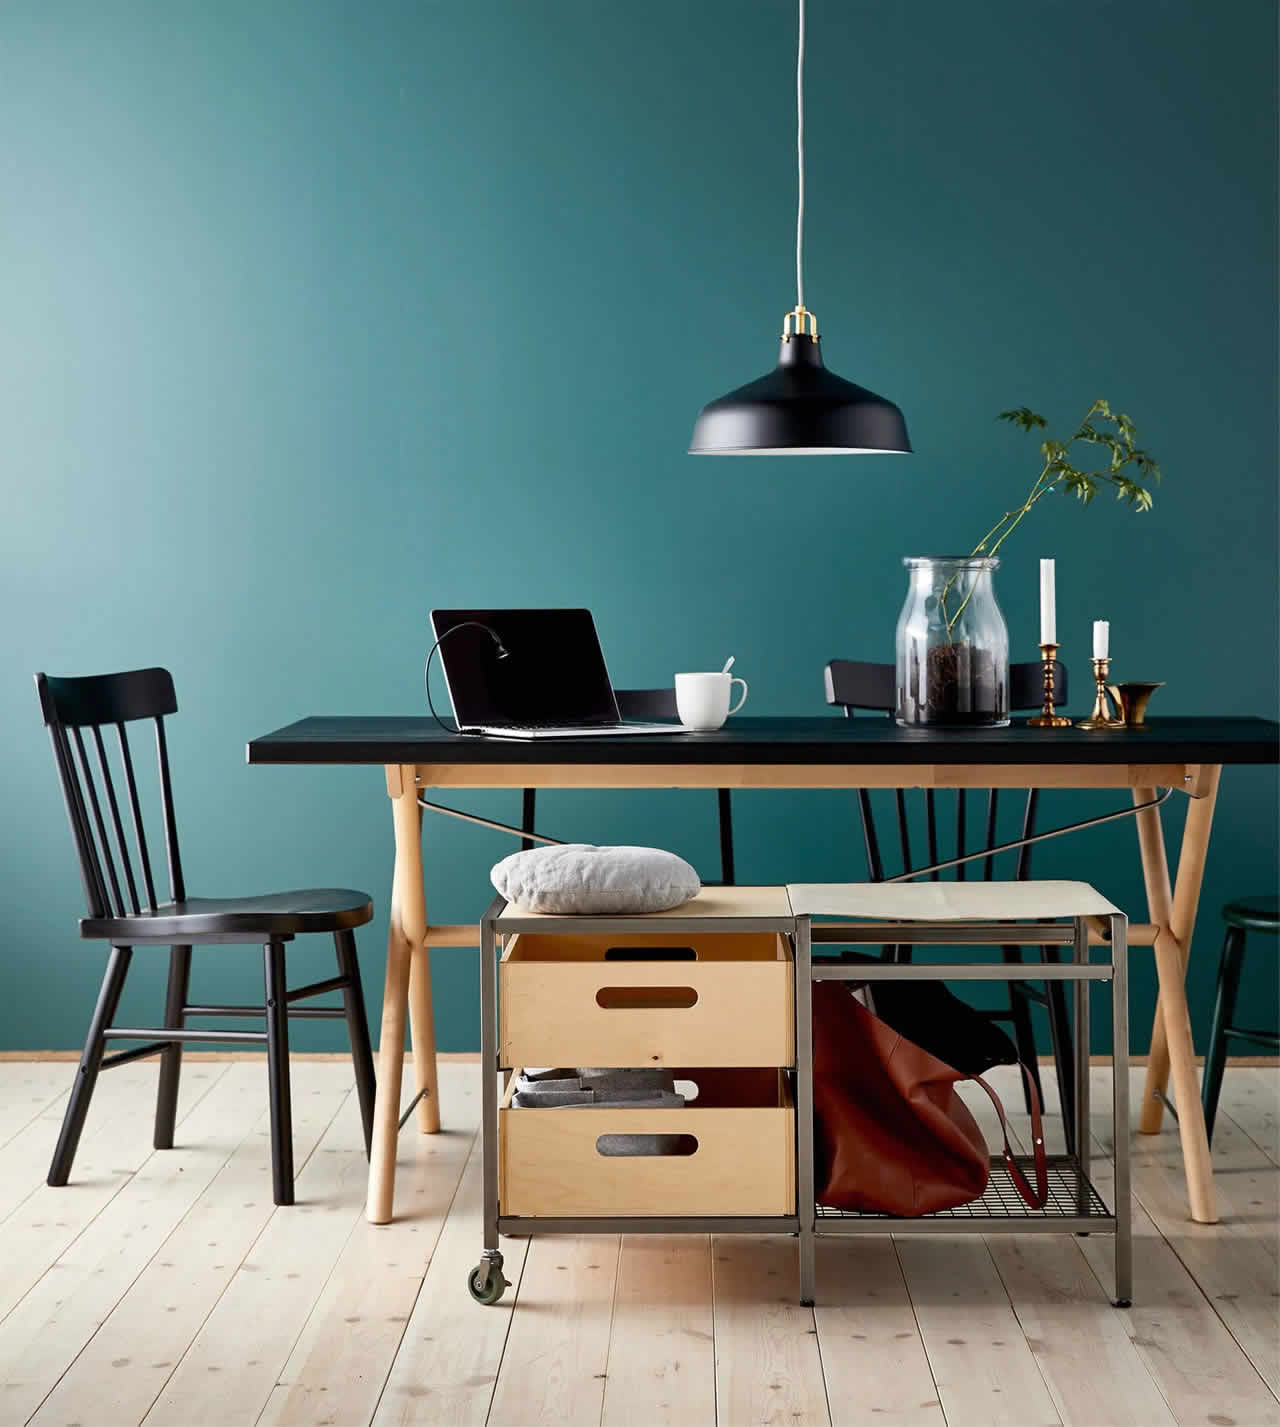 IKEA Ideas - 5 study space ideas for any space at home